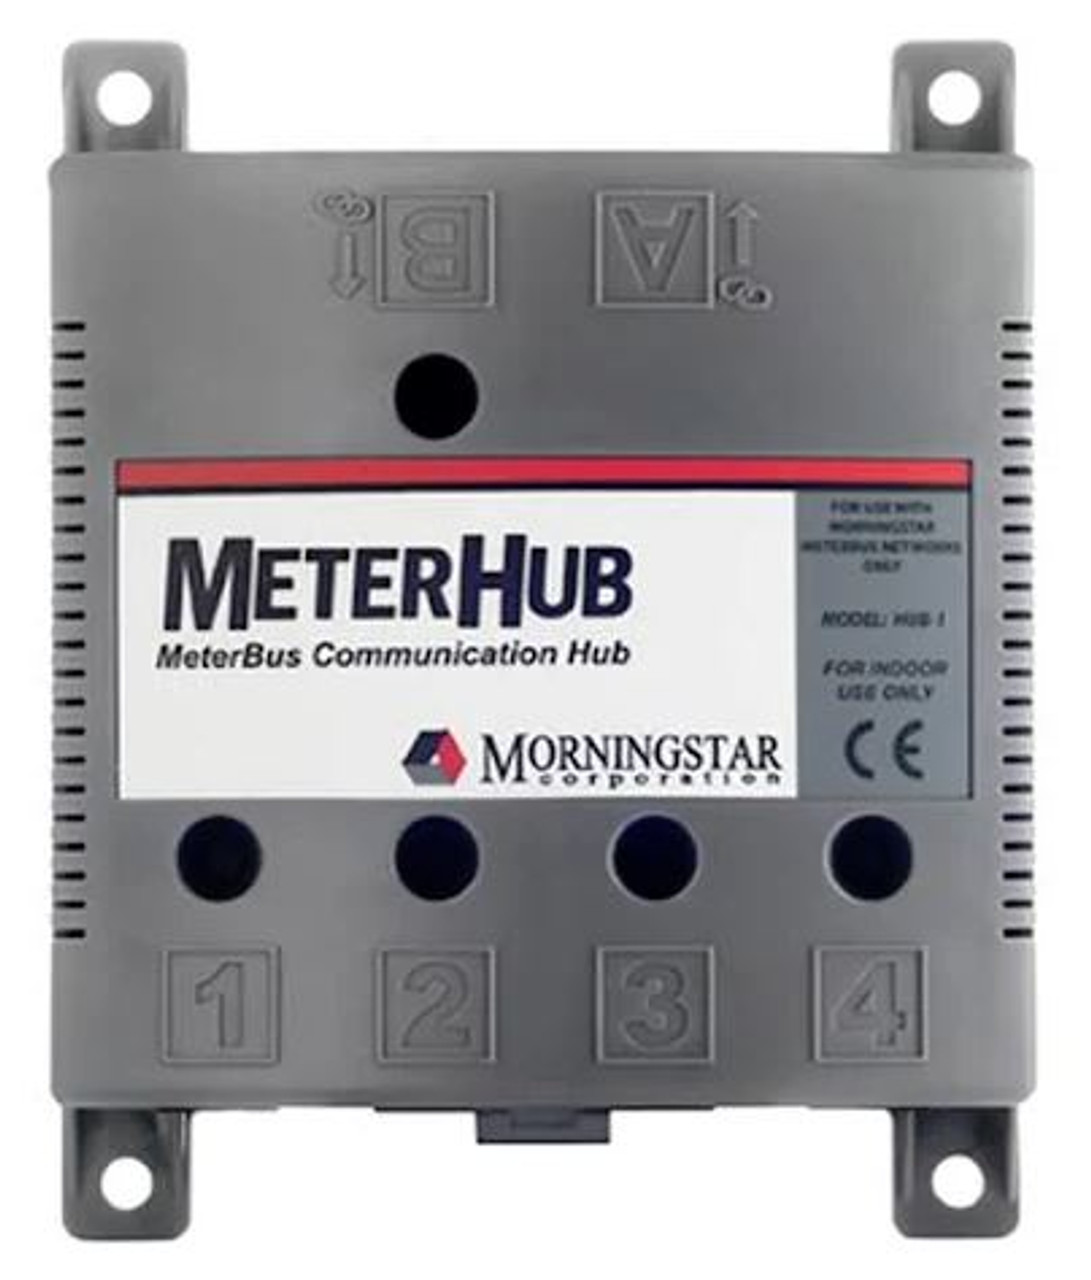 Morningstar HUB-1 MeterHub Communication Hub